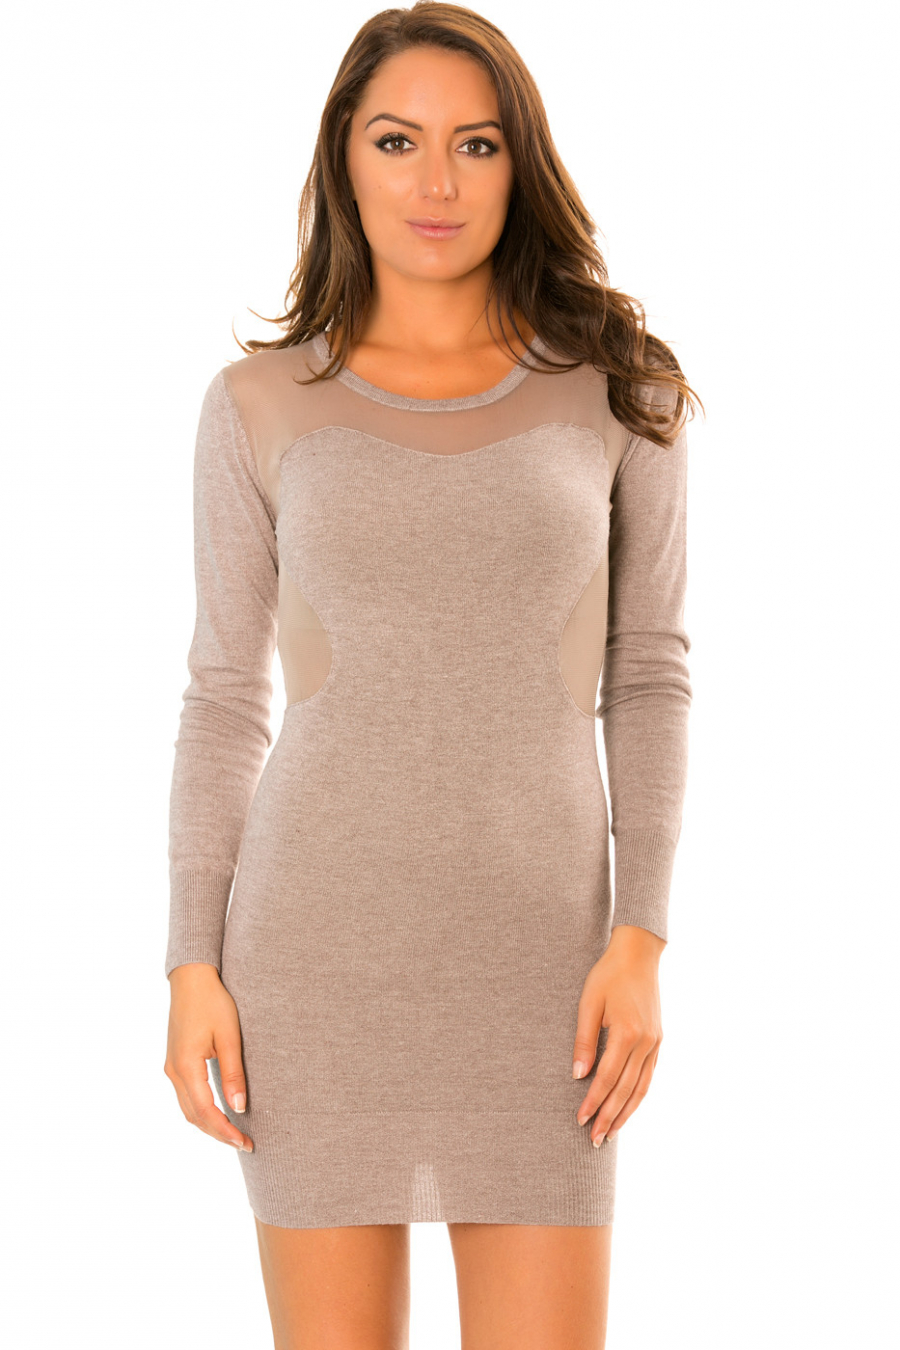 Robe pull Taupe à buste en tulle. PU300-121